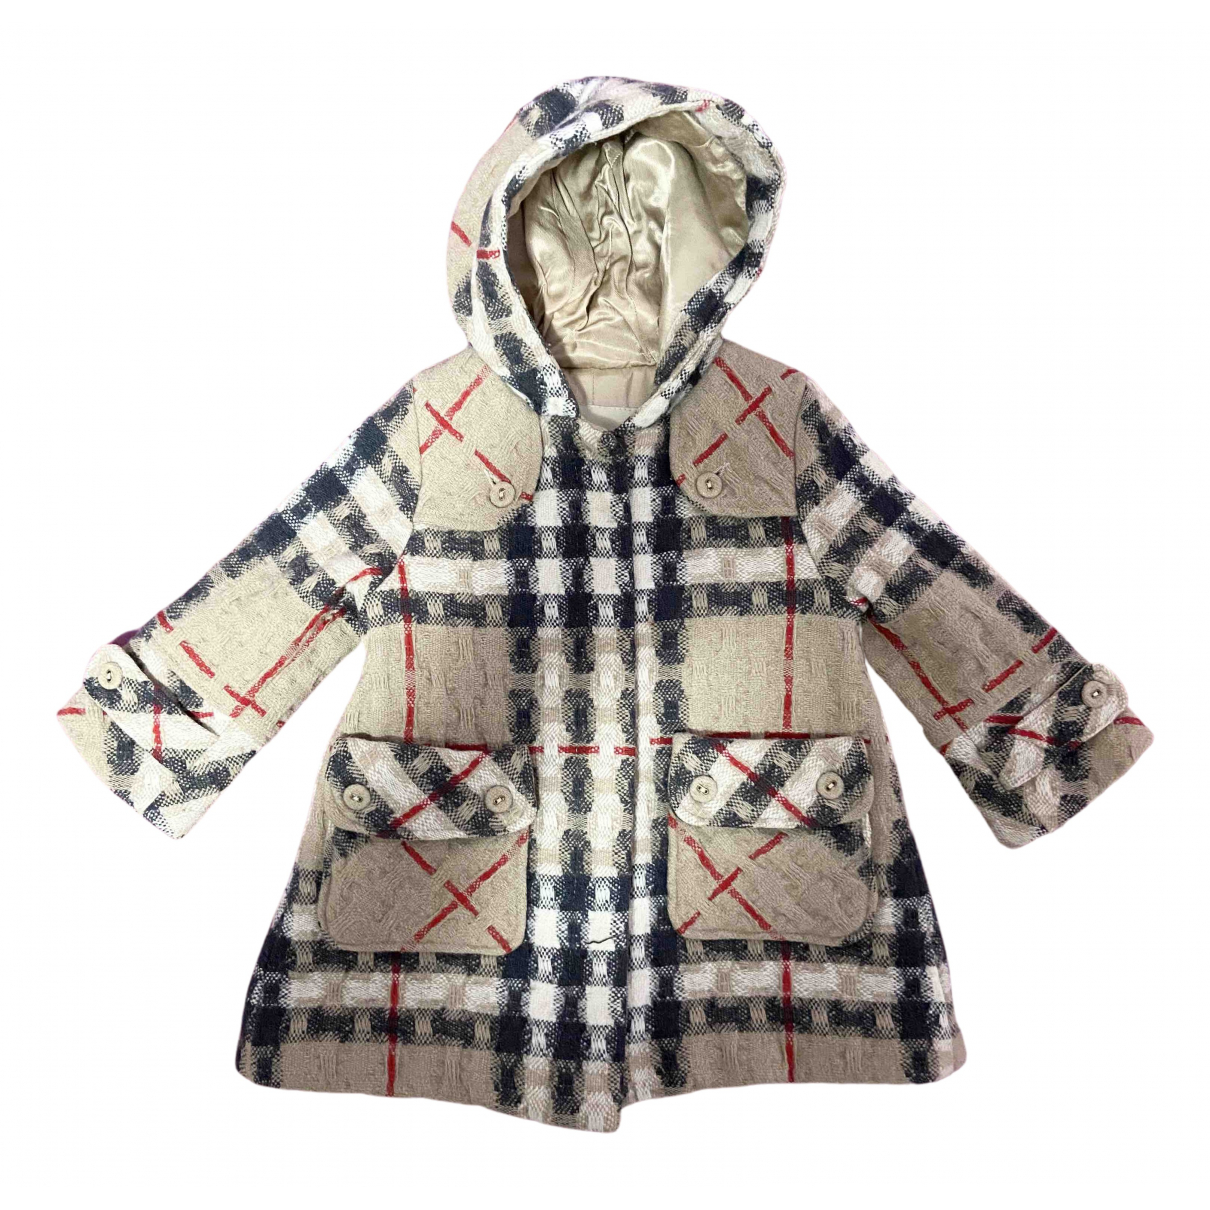 Burberry \N Beige Wool jacket & coat for Kids 18 months - up to 81cm FR